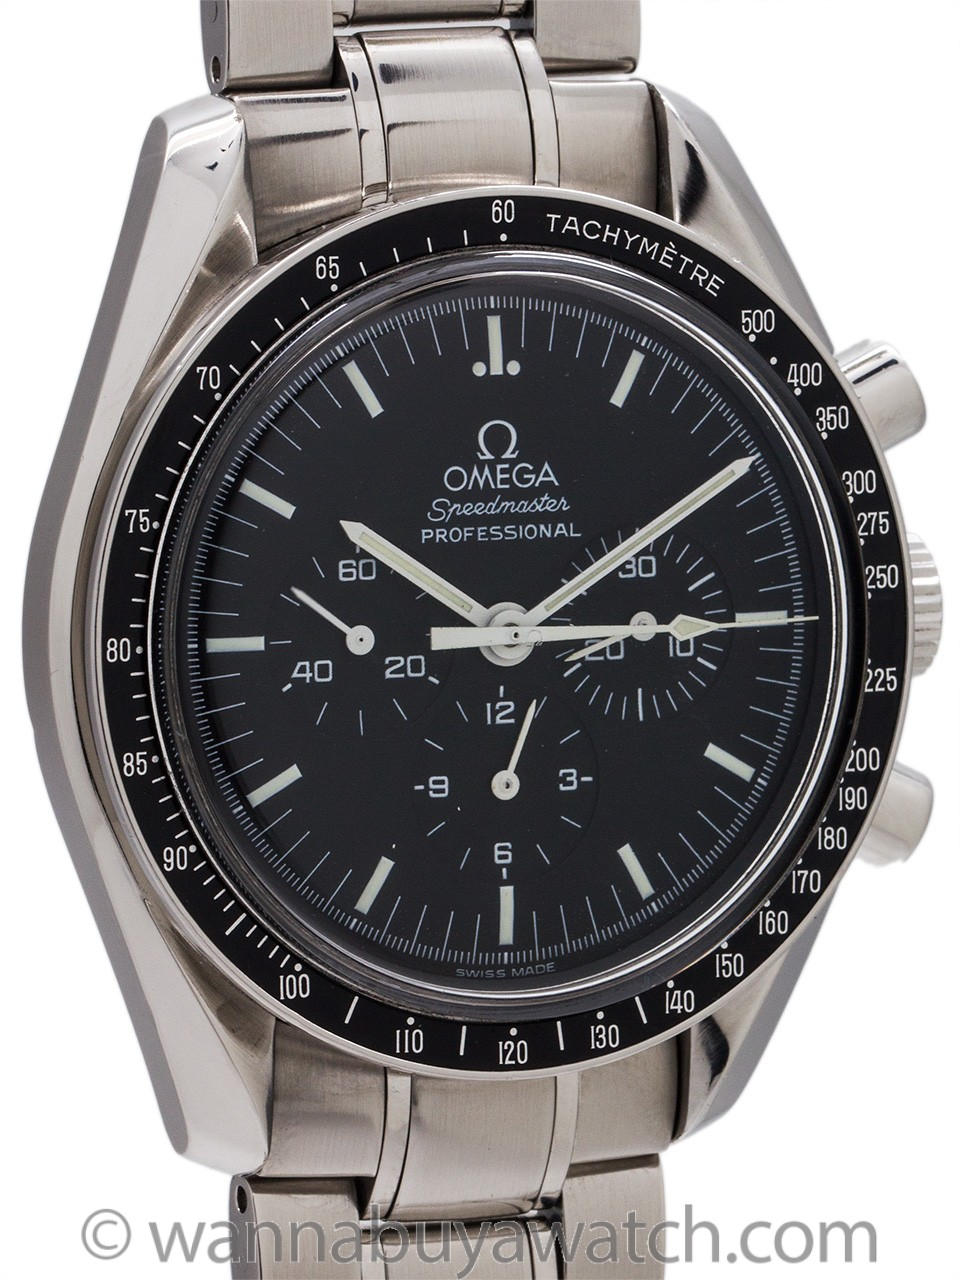 Omega Speedmaster Display Back ref# 3572.50 circa 2000s